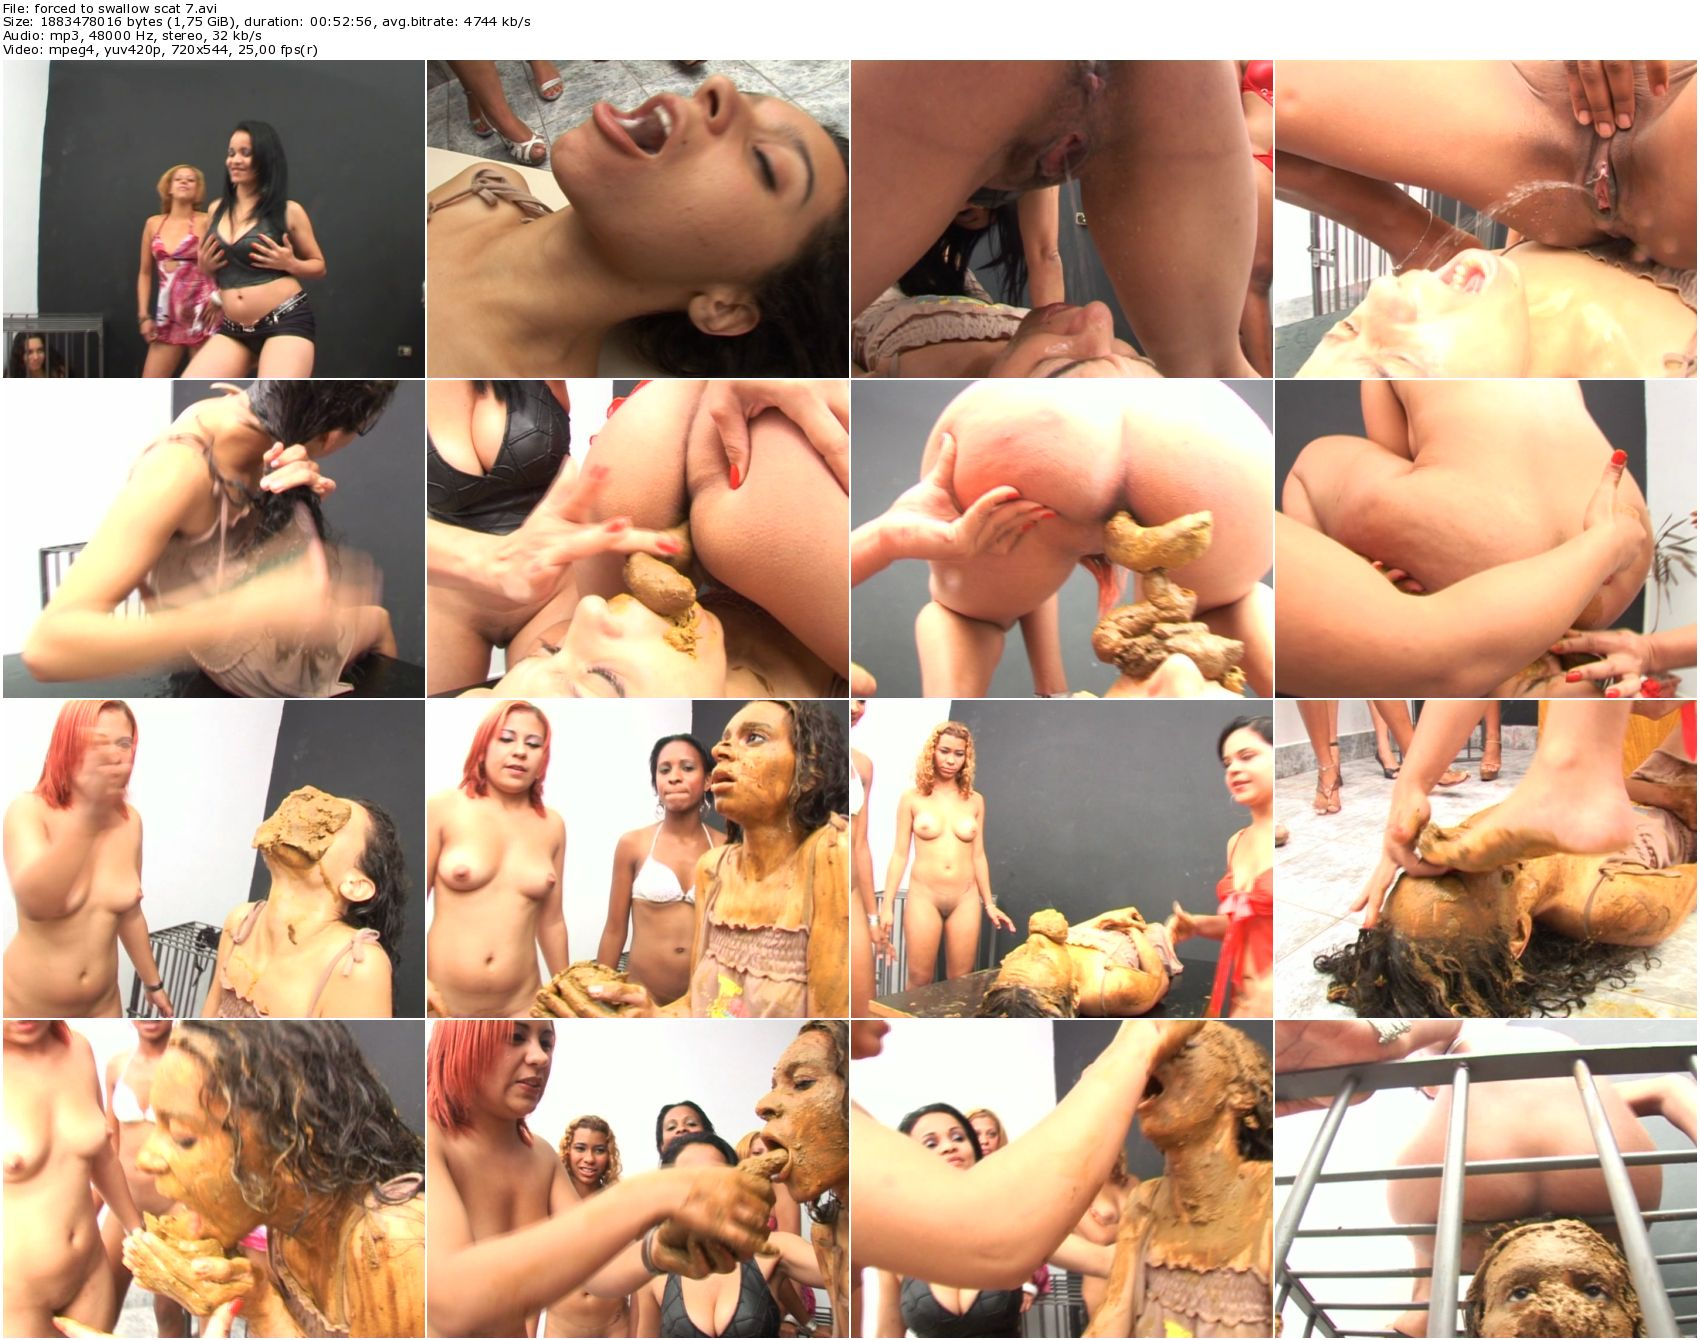 forced to swallow Search - XVIDEOSCOM - Free Porn Videos